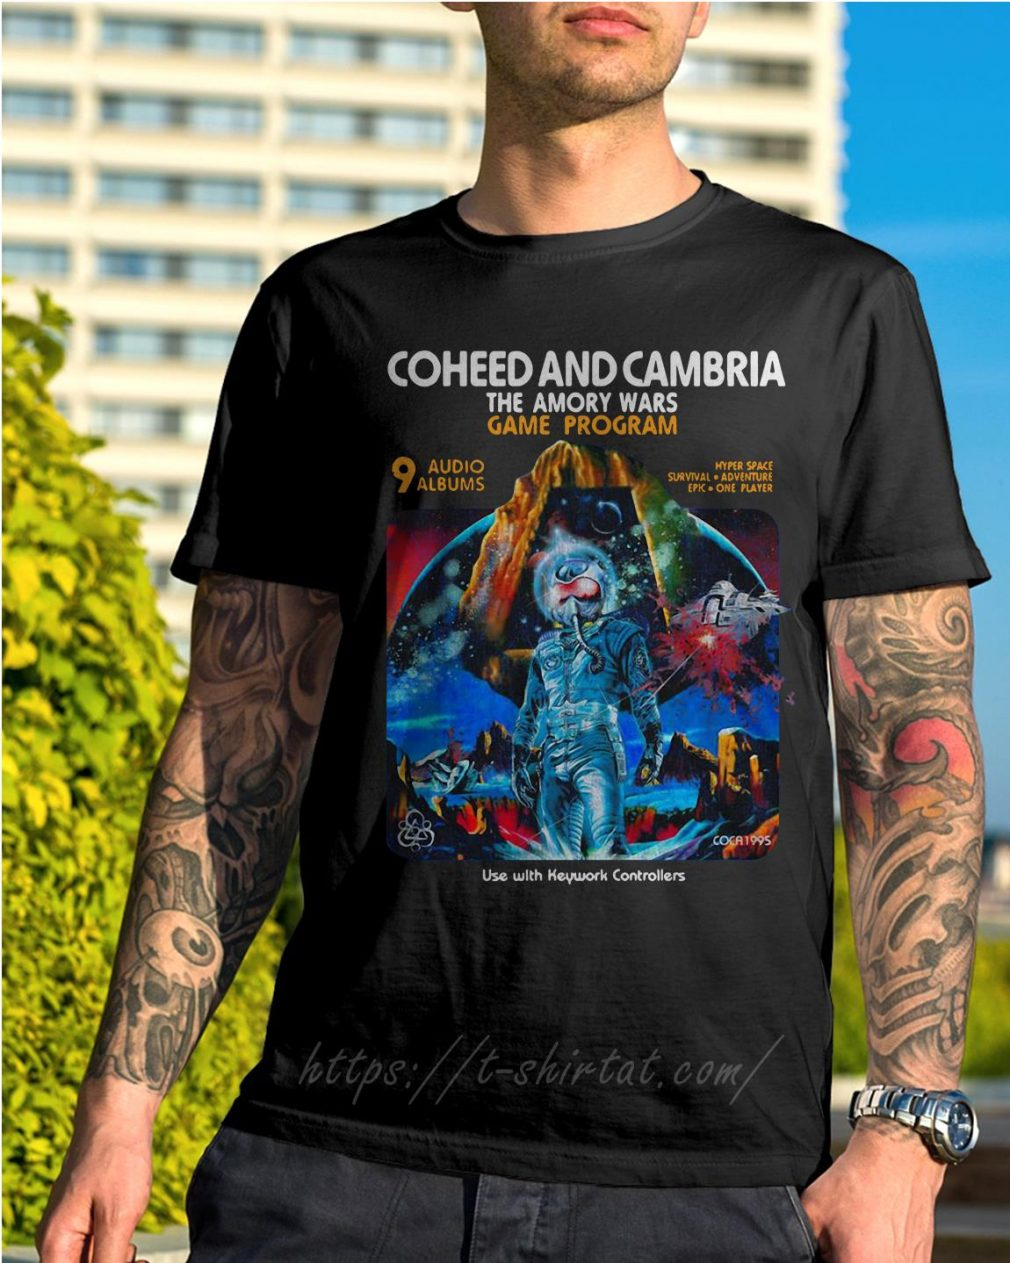 Coheed and Cambria the Amory wars game program use with keyword controllers shirt